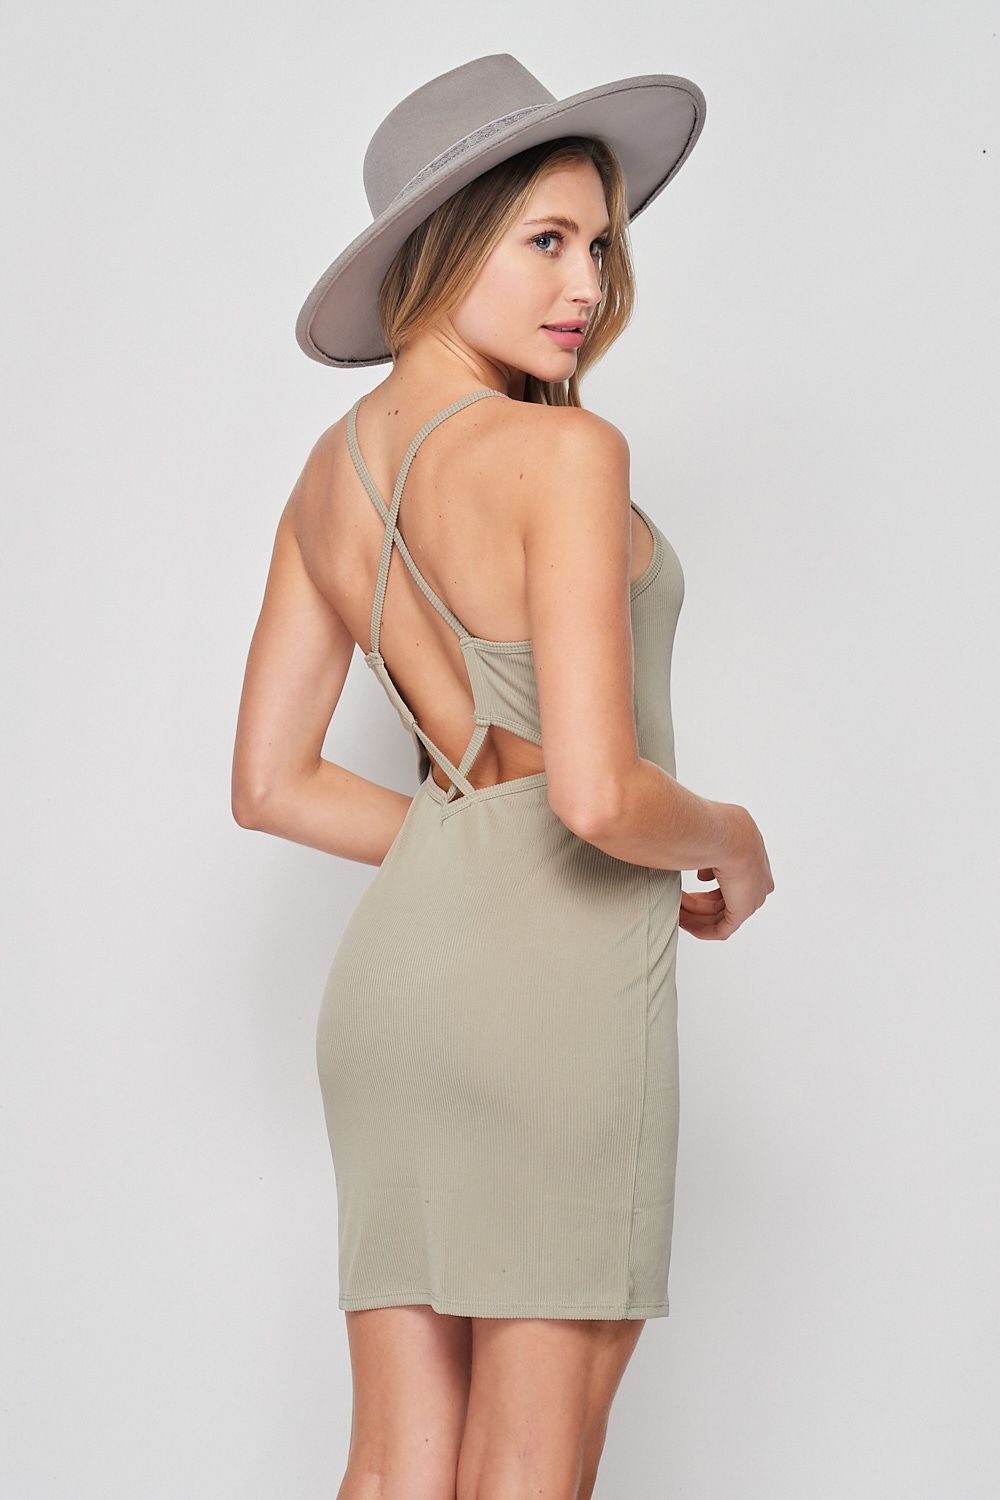 Blank Lewks | Vintage Wash Ribbed Criss Cross Back Strap Dress | Olive